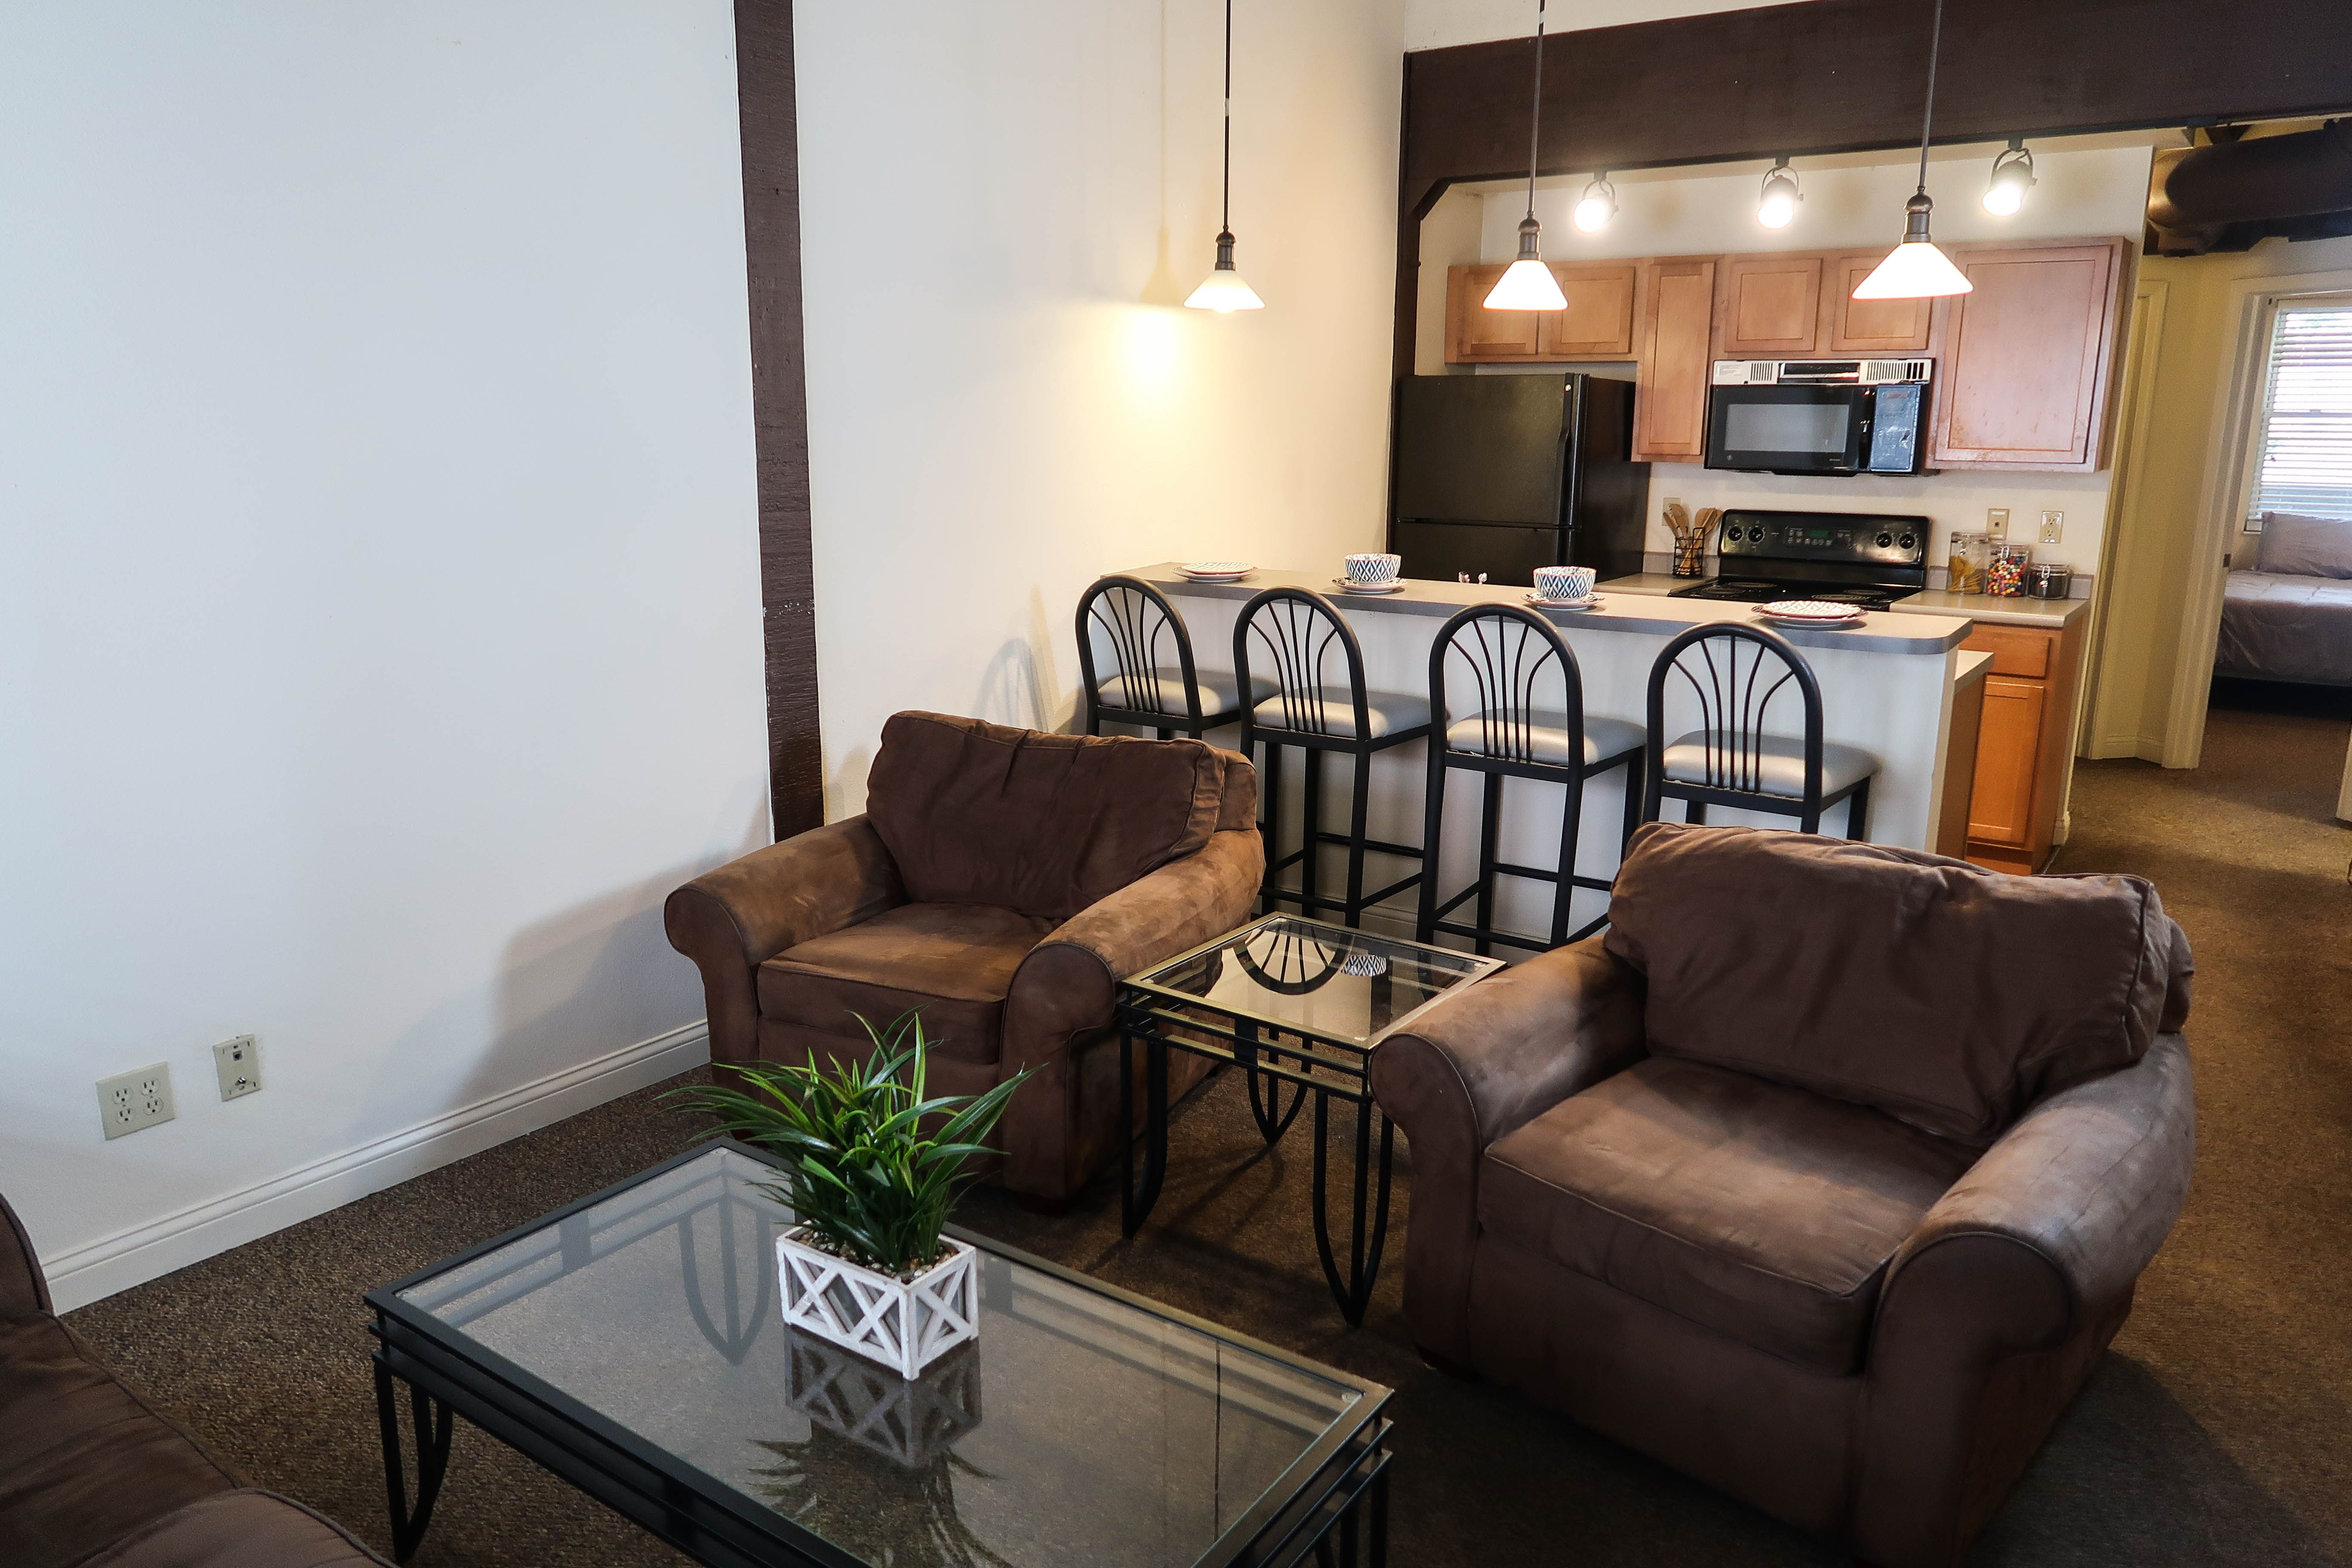 These Spacious Four Bedroom Apartments Are Located Just Minutes From The University Of Illinois Urbana Champaign Main Quad Apartment Bedroom Apartment Spacious